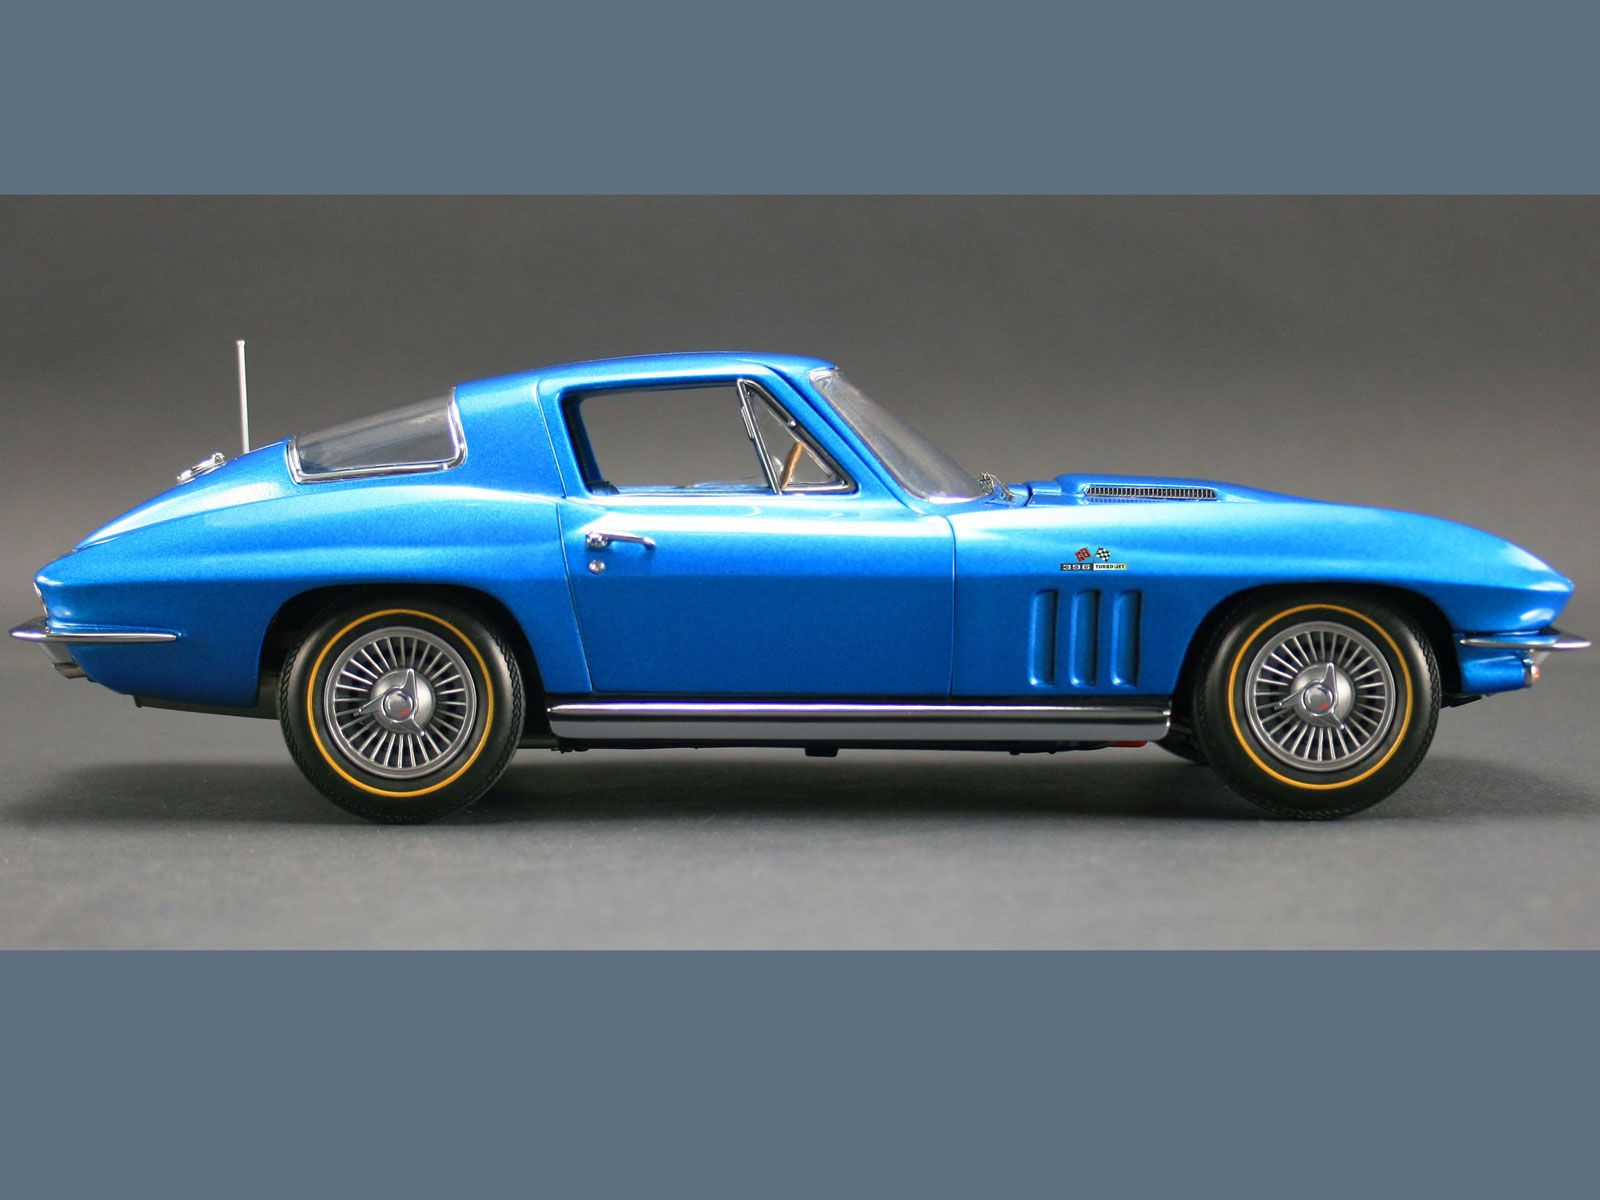 1965 chevy corvette looks just like my old corvette wish i still had it